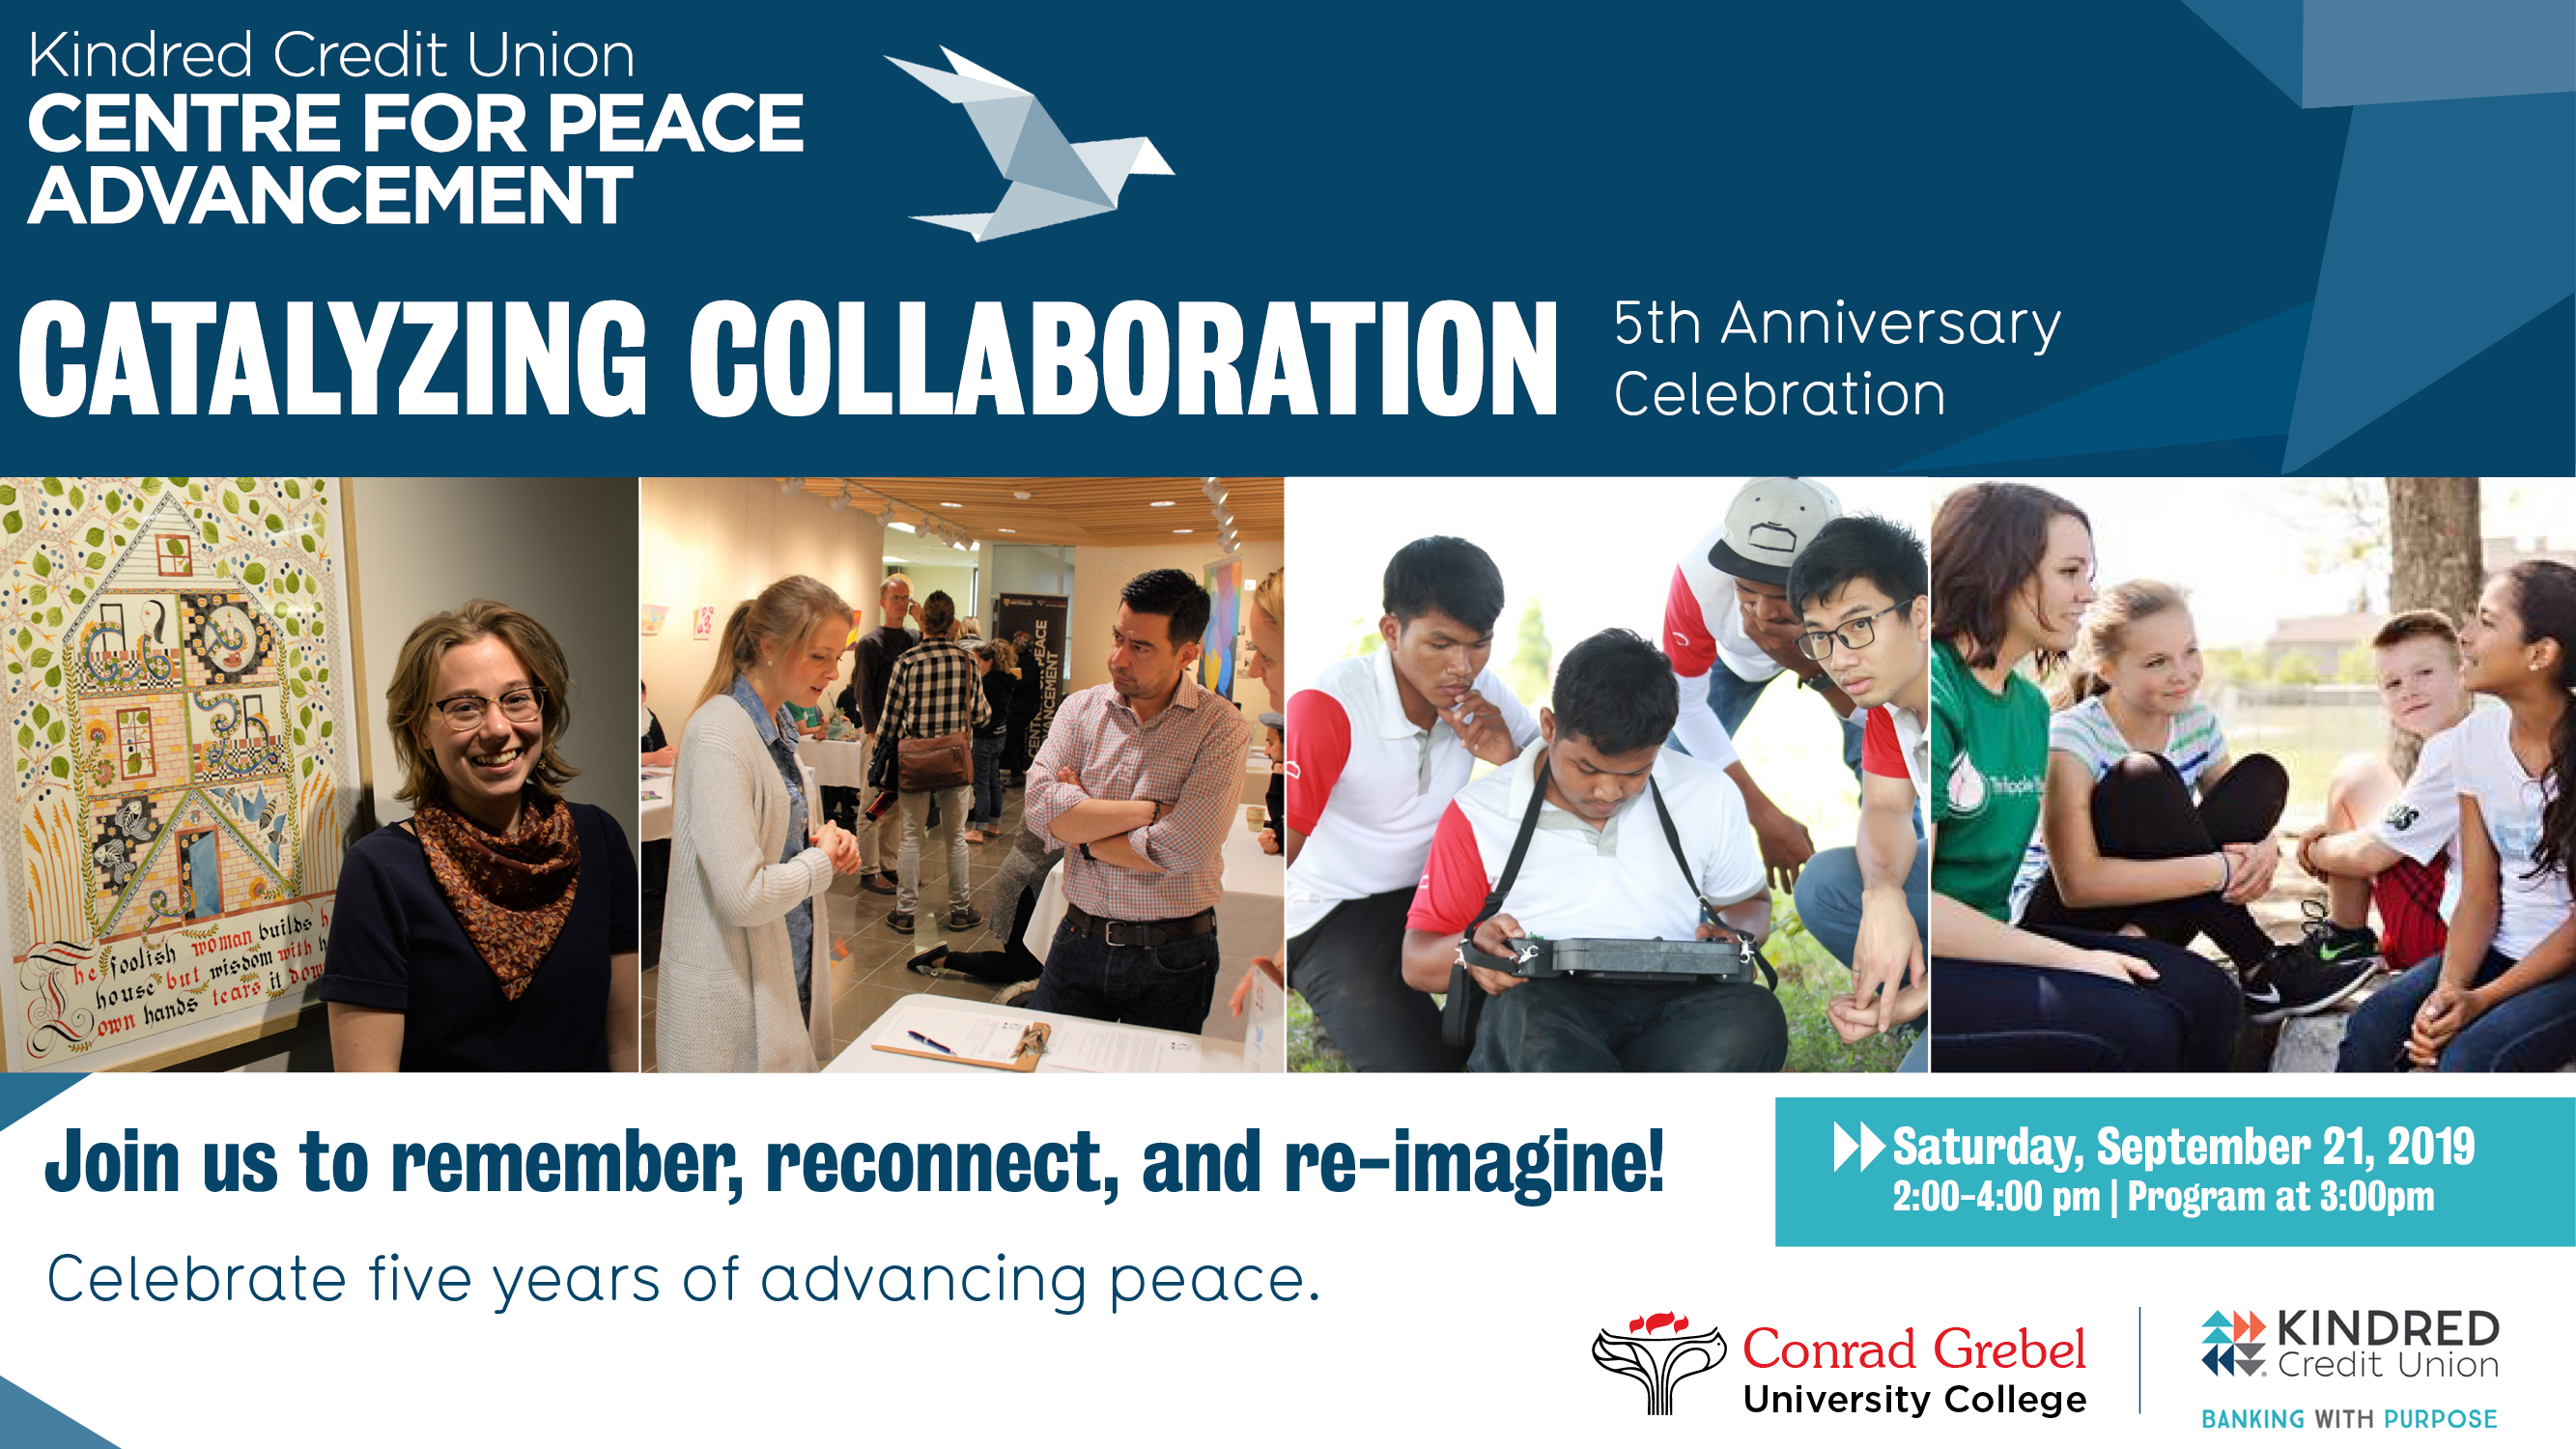 Centre for Peace Advancement 5th anniversary celebration